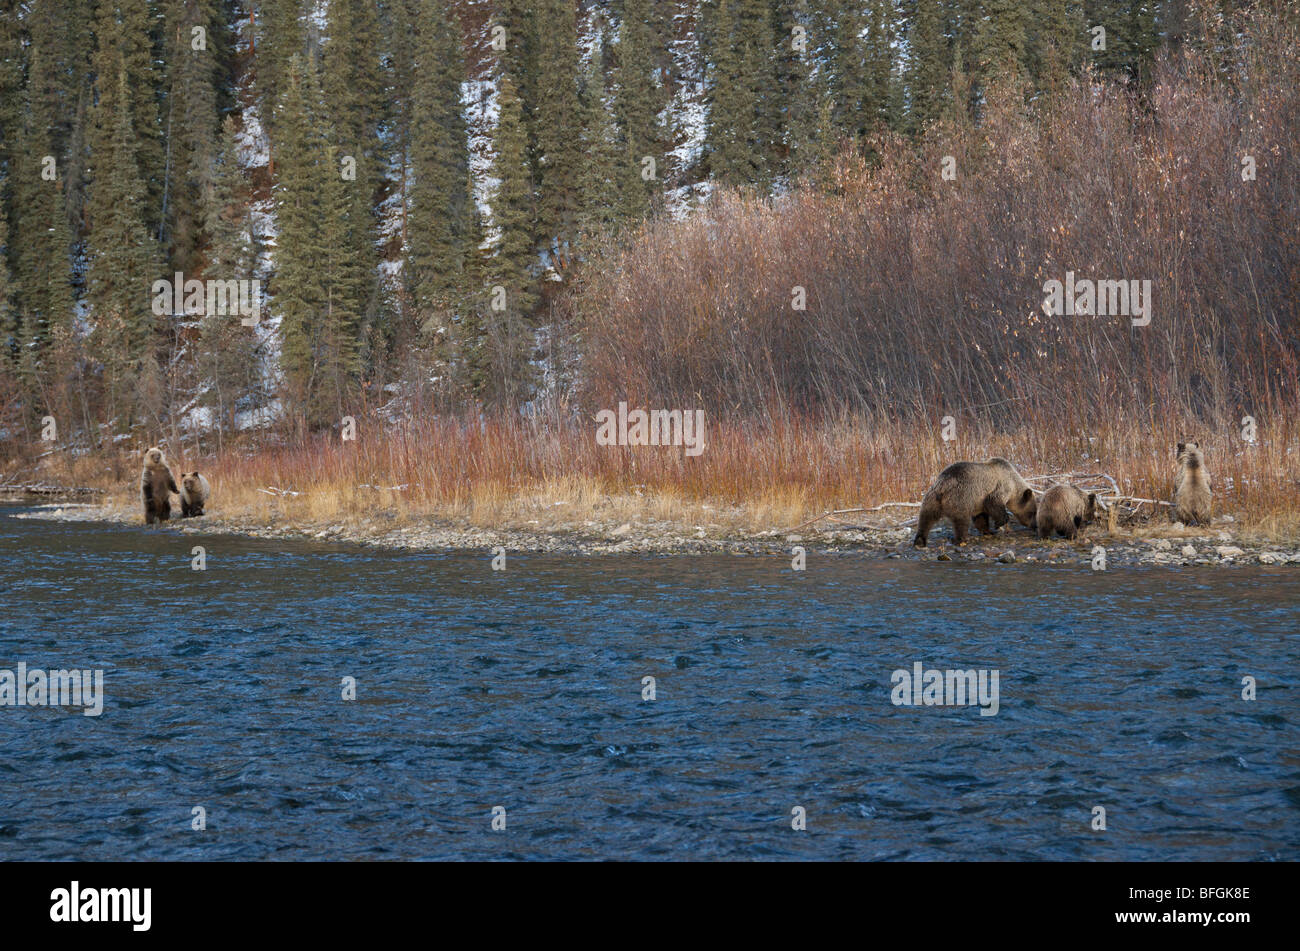 Grizzly Bear (Ursus arctos) Sow and 1st year cubs along Fishing Branch River. Ni'iinlii Njik Ecological Reserve - Stock Image